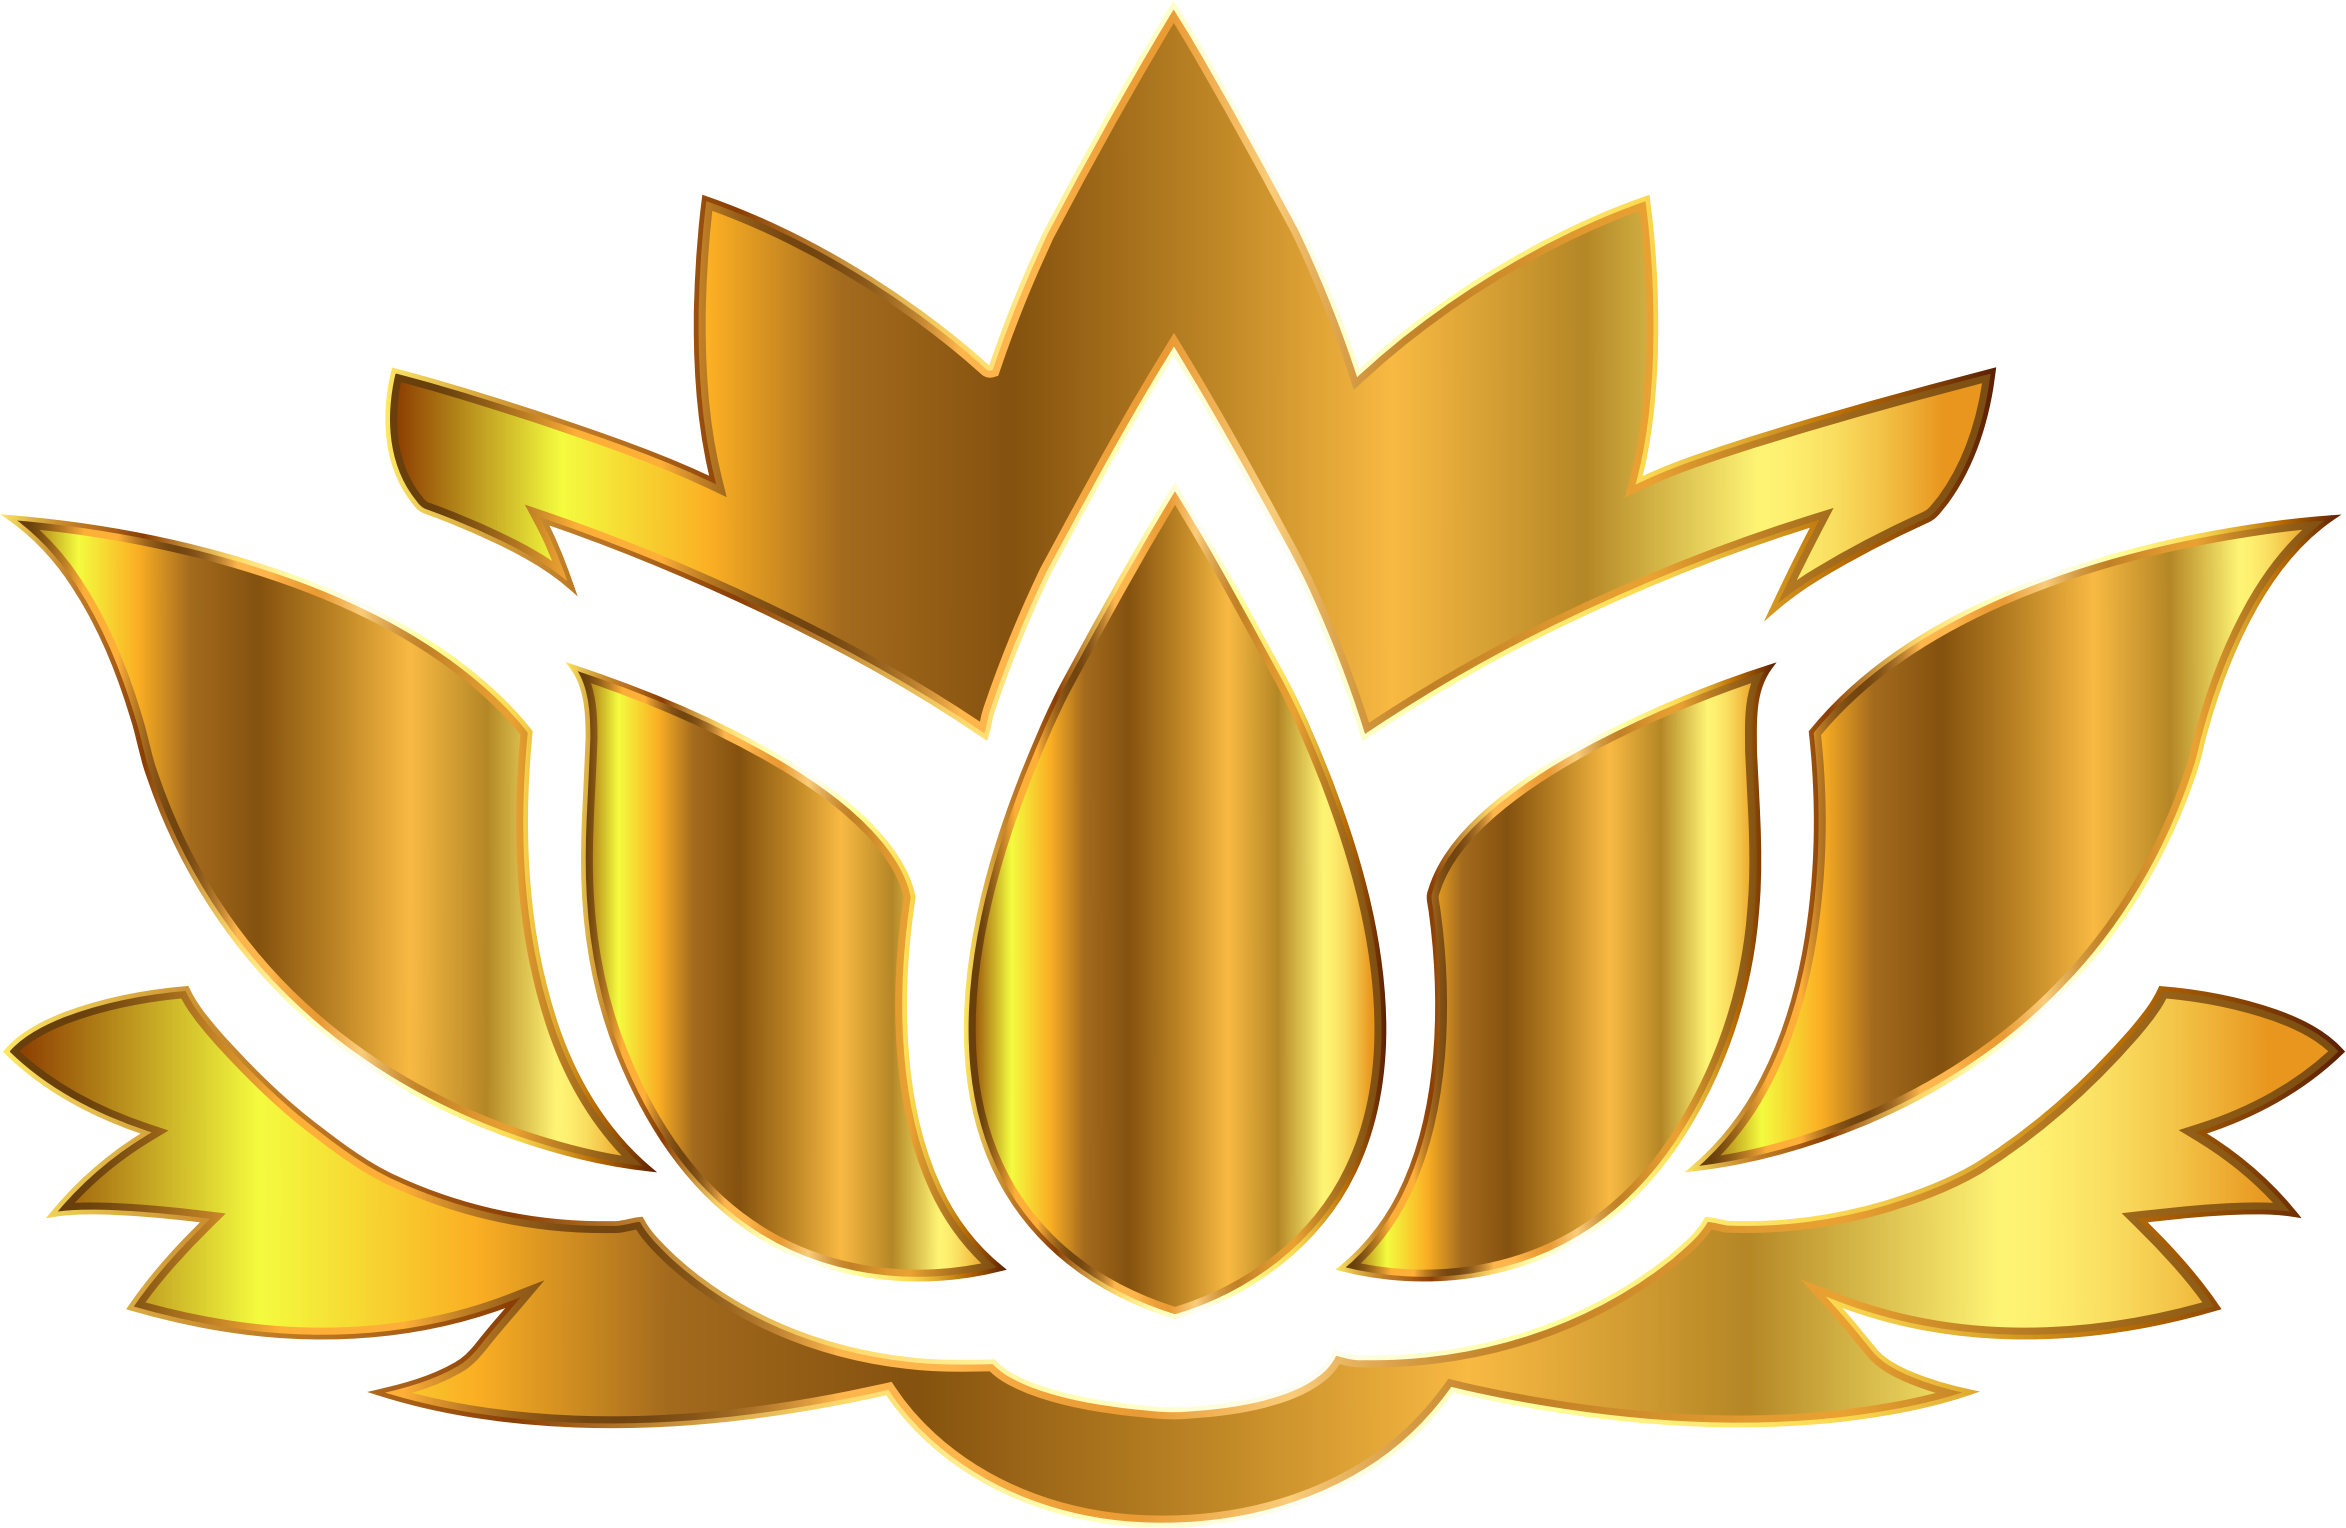 Beautiful clipart gold flower Design Lotus Flower Background Gold